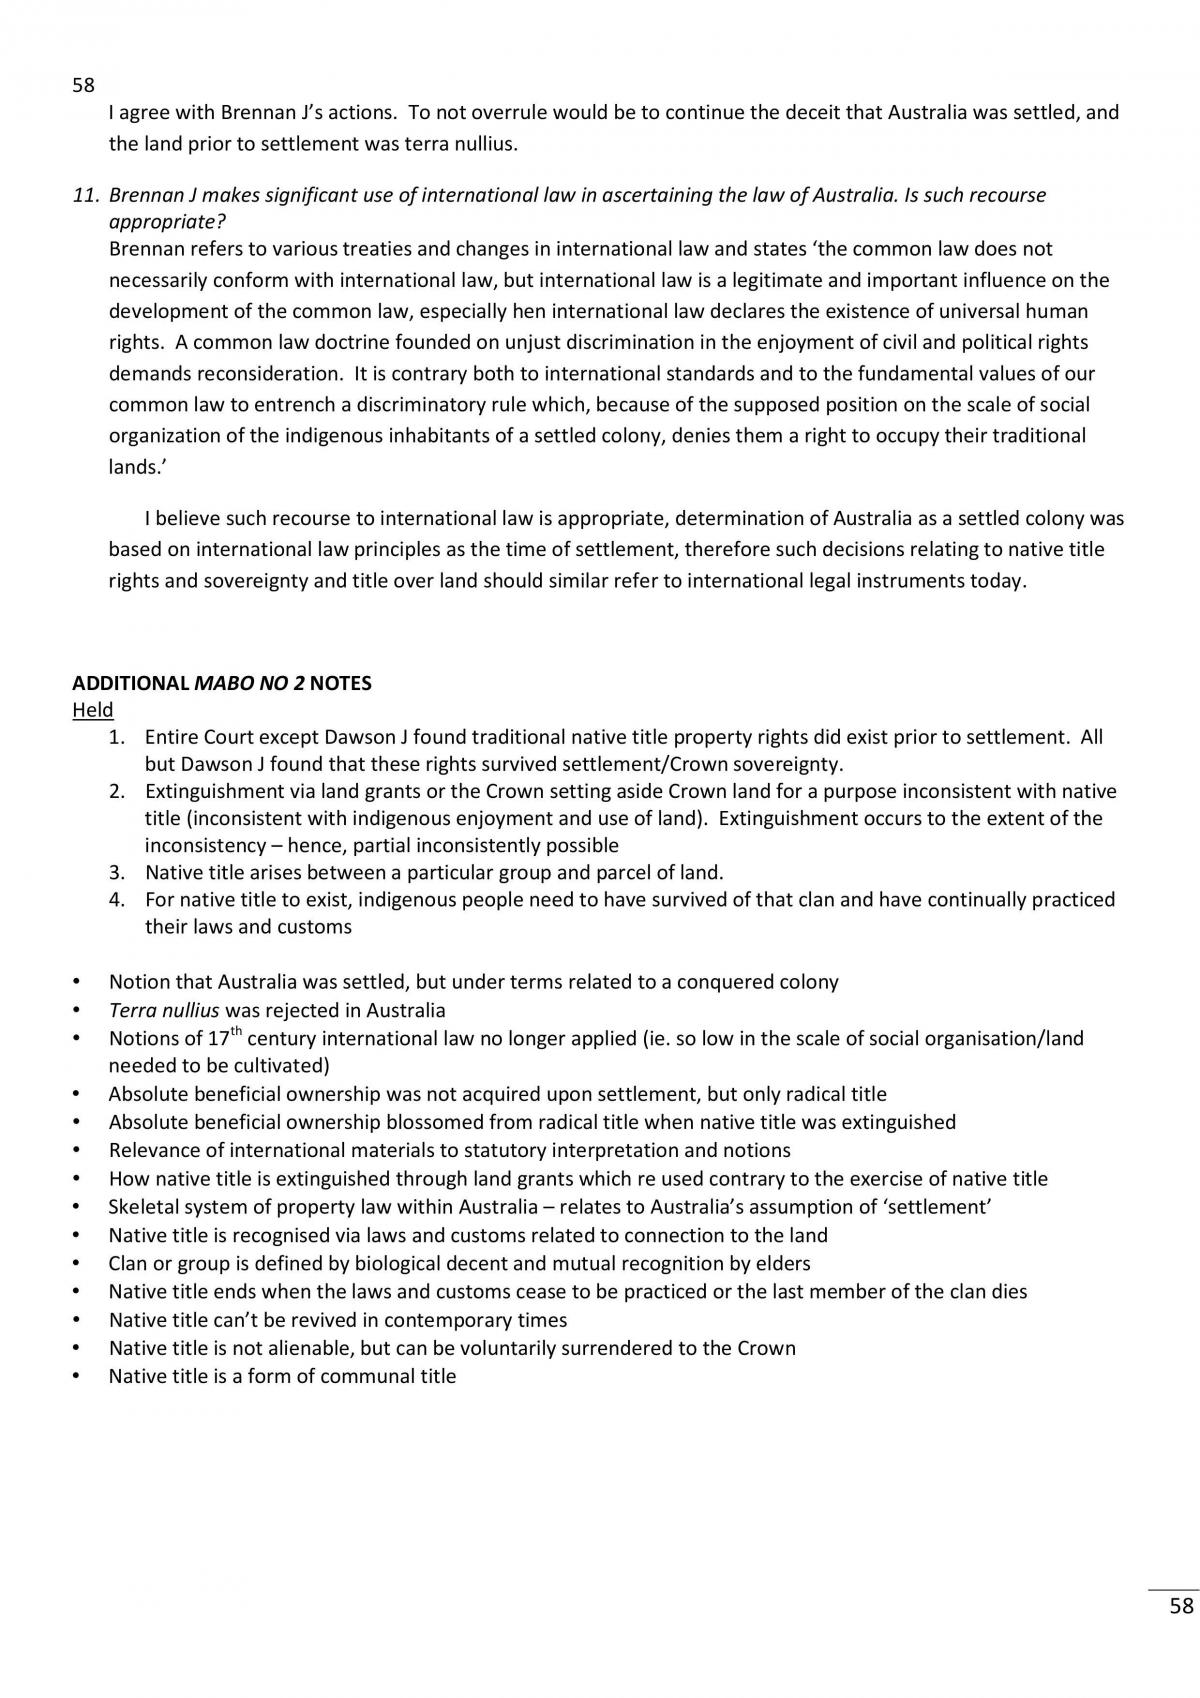 Foundation Of Laws Summary Of Main Topics Of Course - Page 58